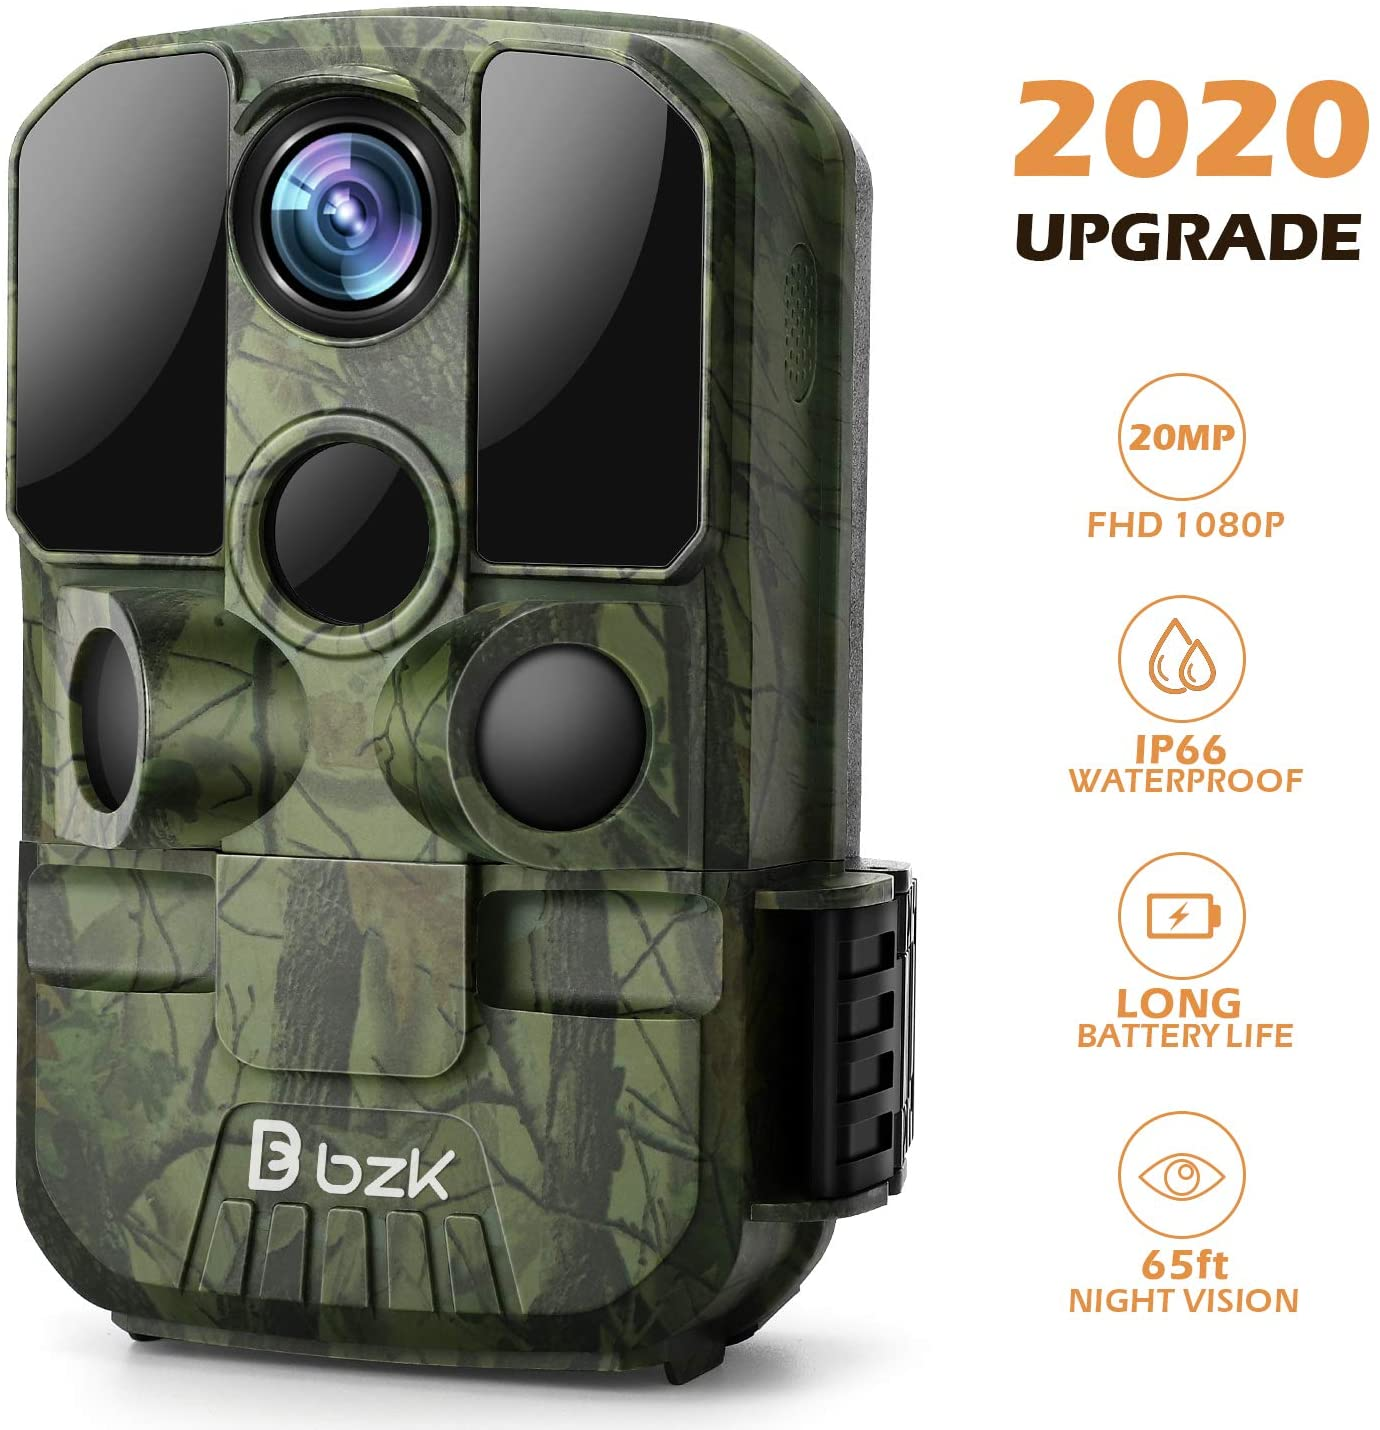 BZK Trail Game Camera - 20MP 1080P HD Waterproof Hunting Cam with Motion Activated Night Vision and 120° Wide Angle Lens for Outdoor Scouting, Wildlife Watching, Farm Monitoring